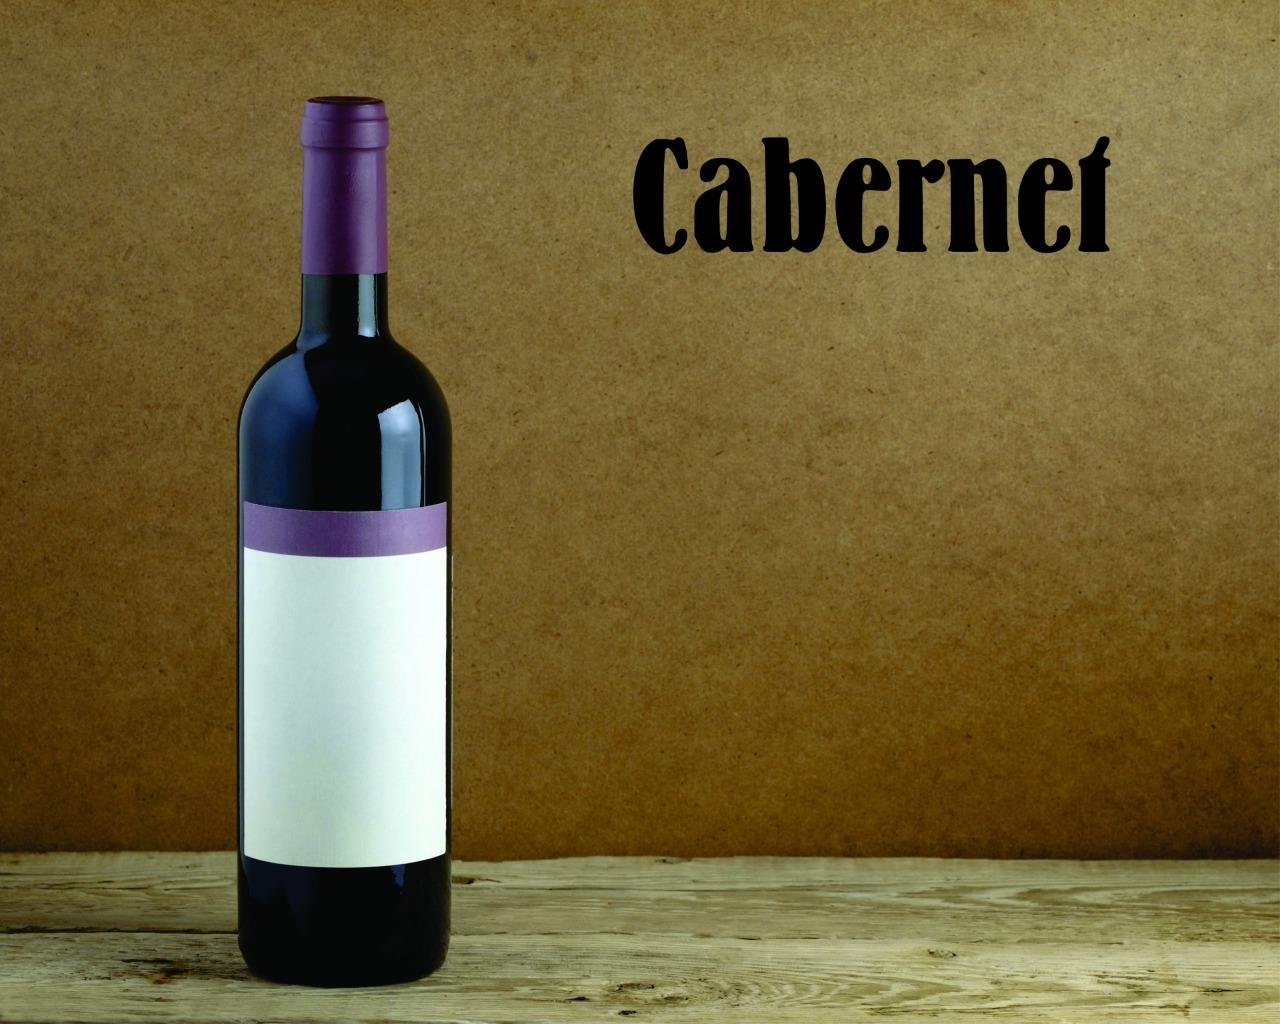 Cabernet Kitchen Quote Color Design with Vinyl Moti 2612 3 Decal Peel /& Stick Wall Sticker Black Size 10 Inches x 40 Inches